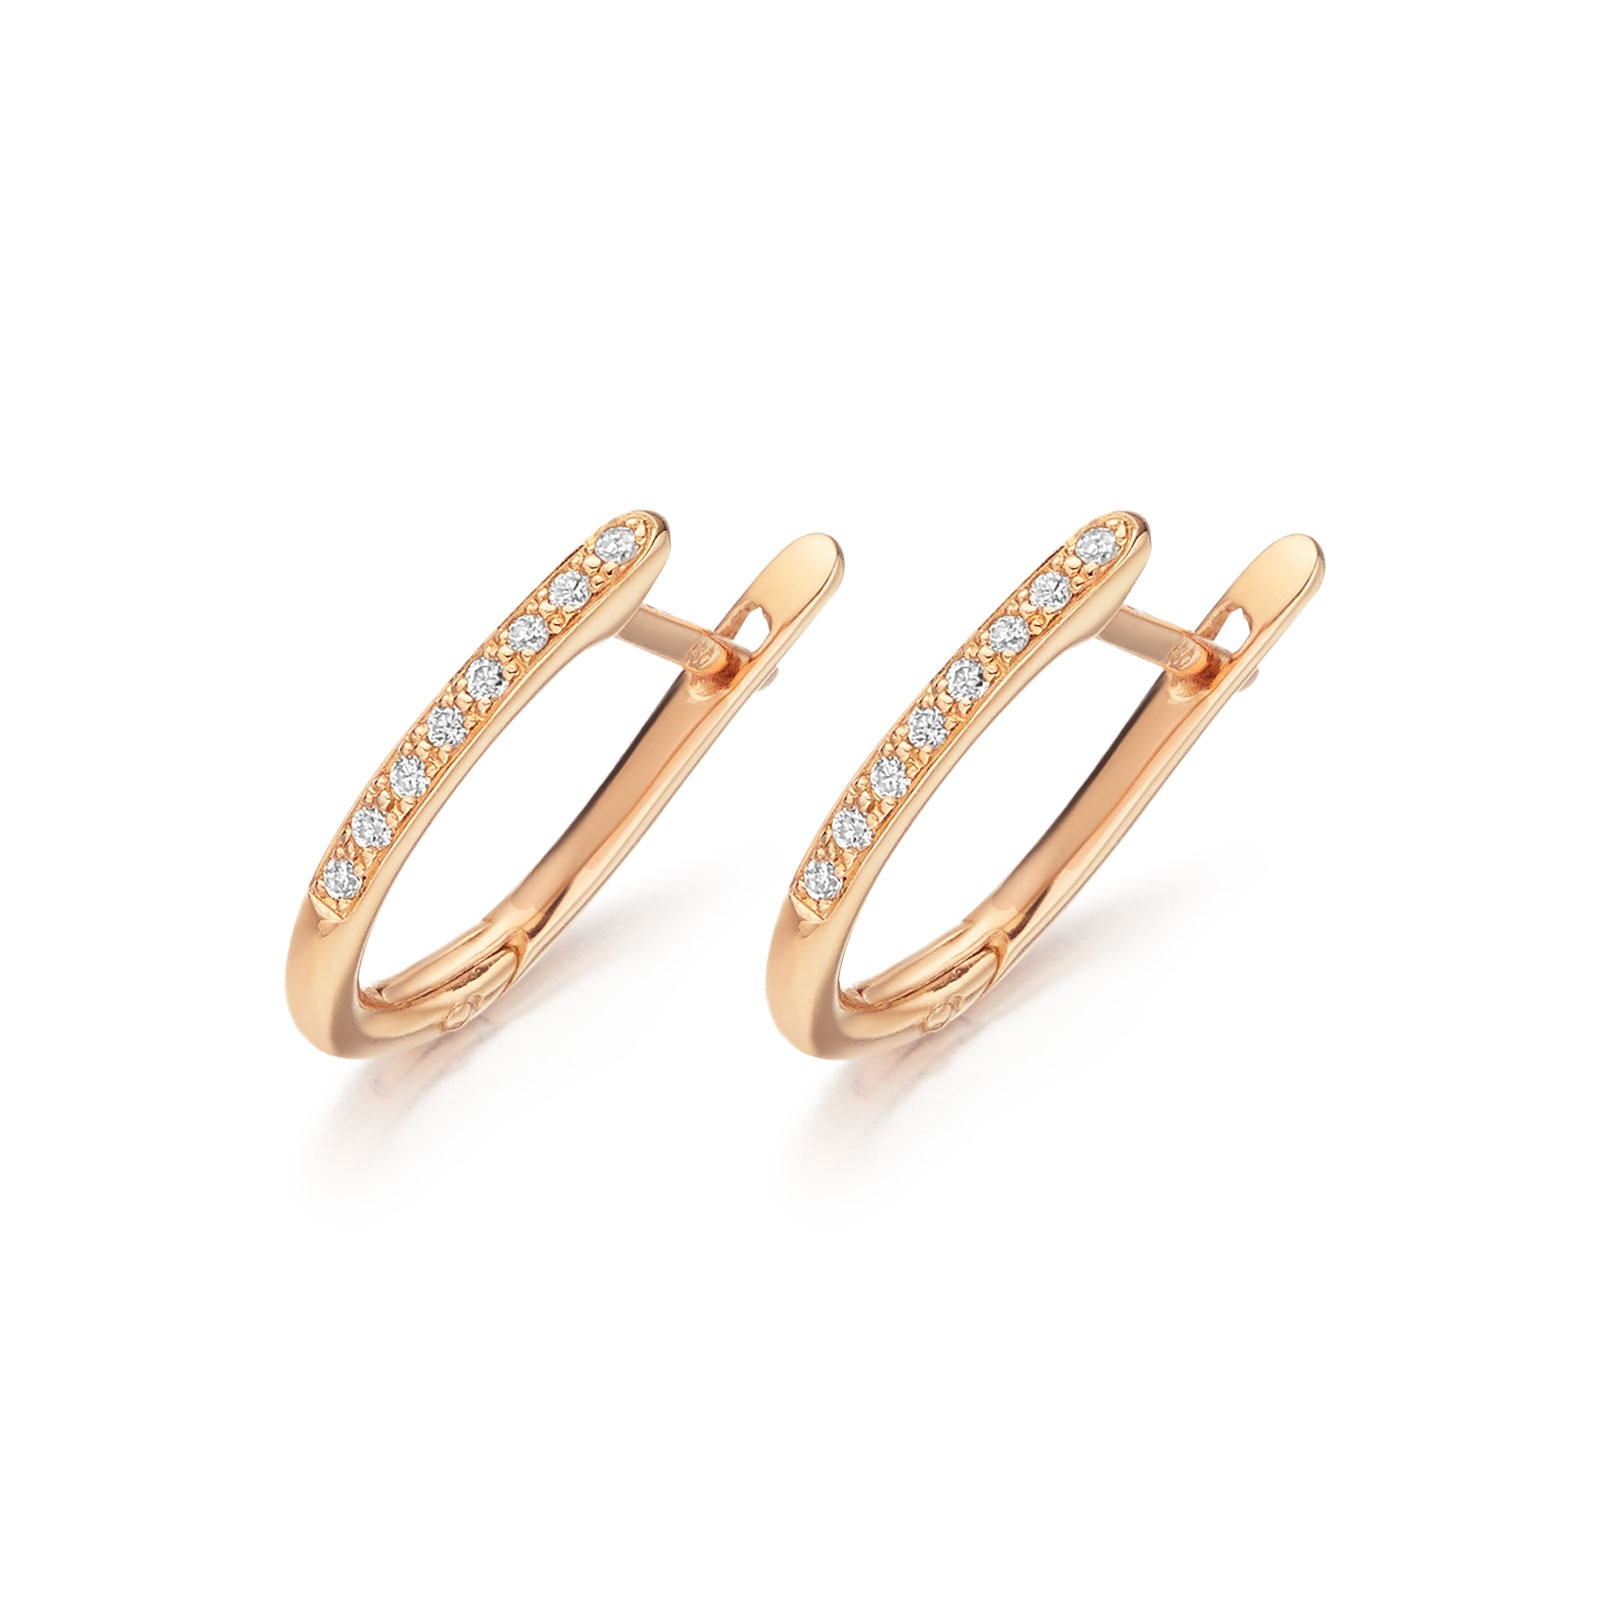 18 carat Rose Gold Diamond Leverback Earrings-1